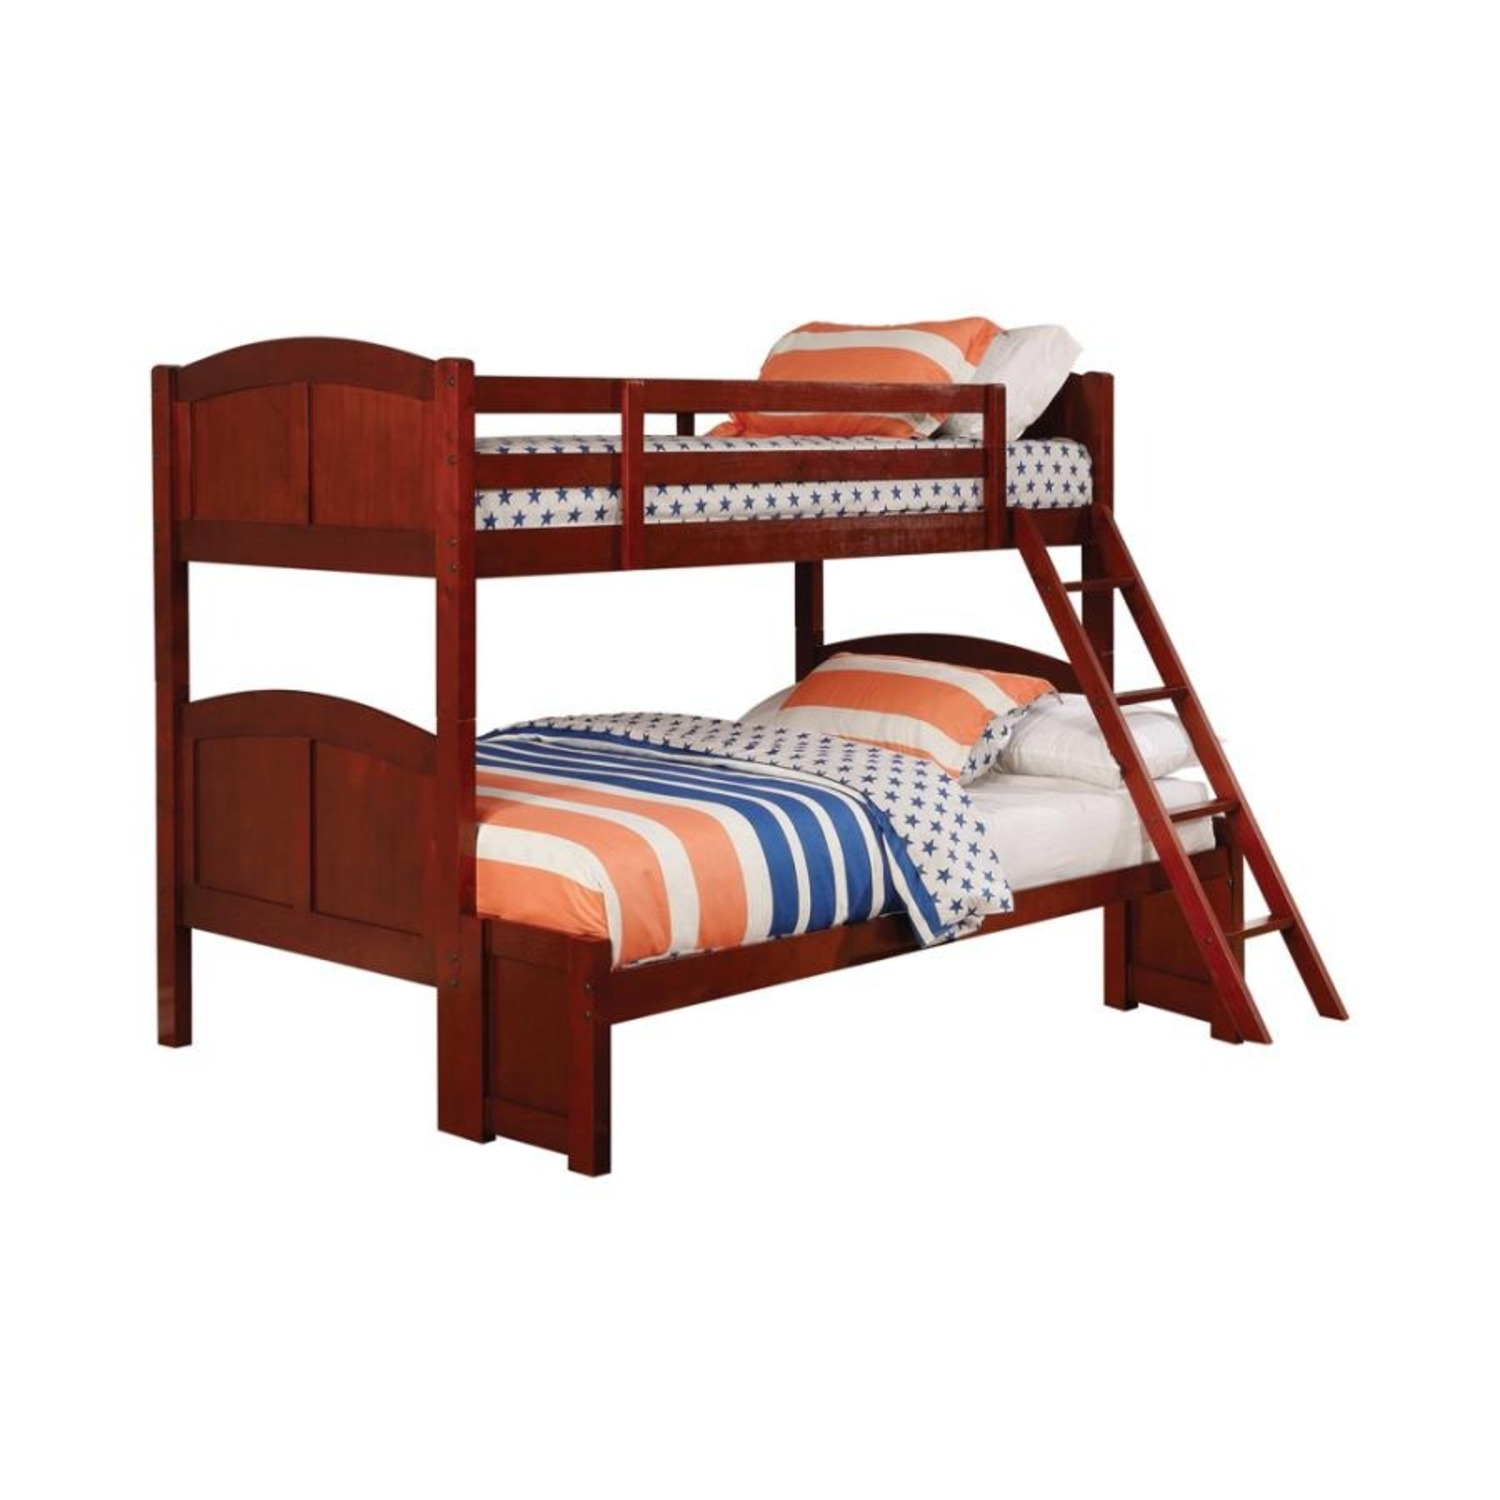 Twin Over Full Bunk Bed In Warm Chestnut Finish - image-0